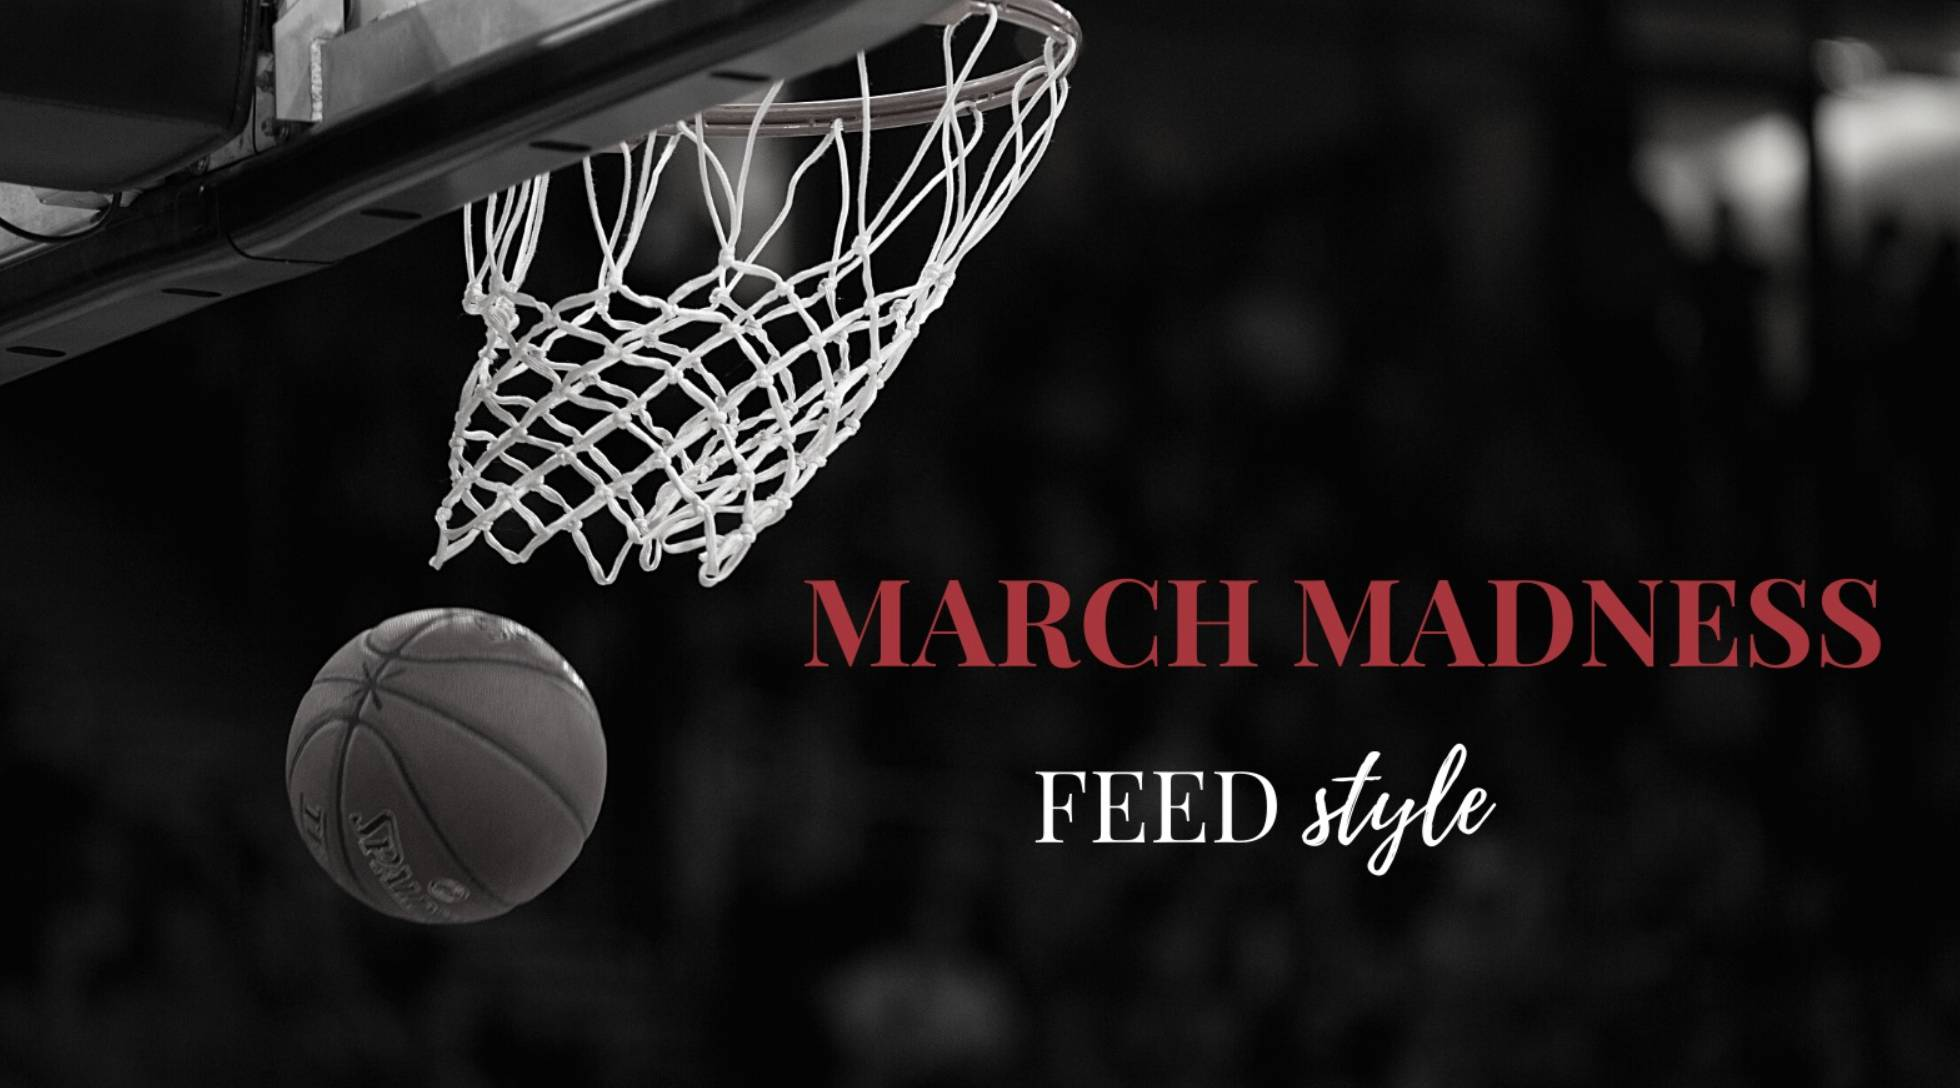 March Madness... FEED style